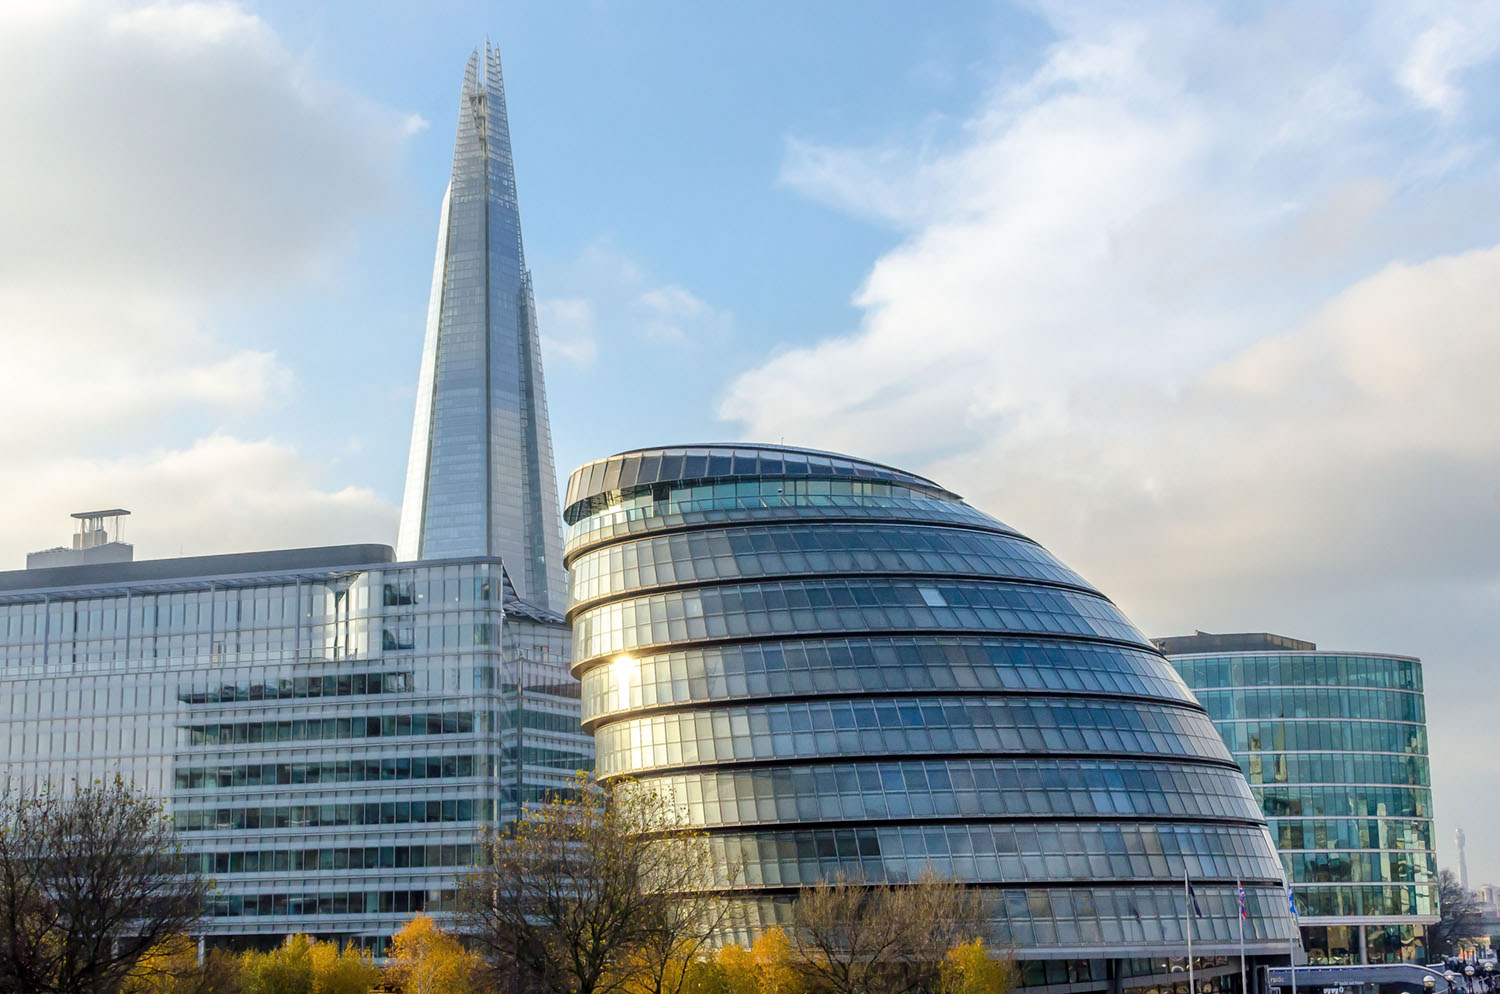 Image: London's amazing architecture along the Thames.